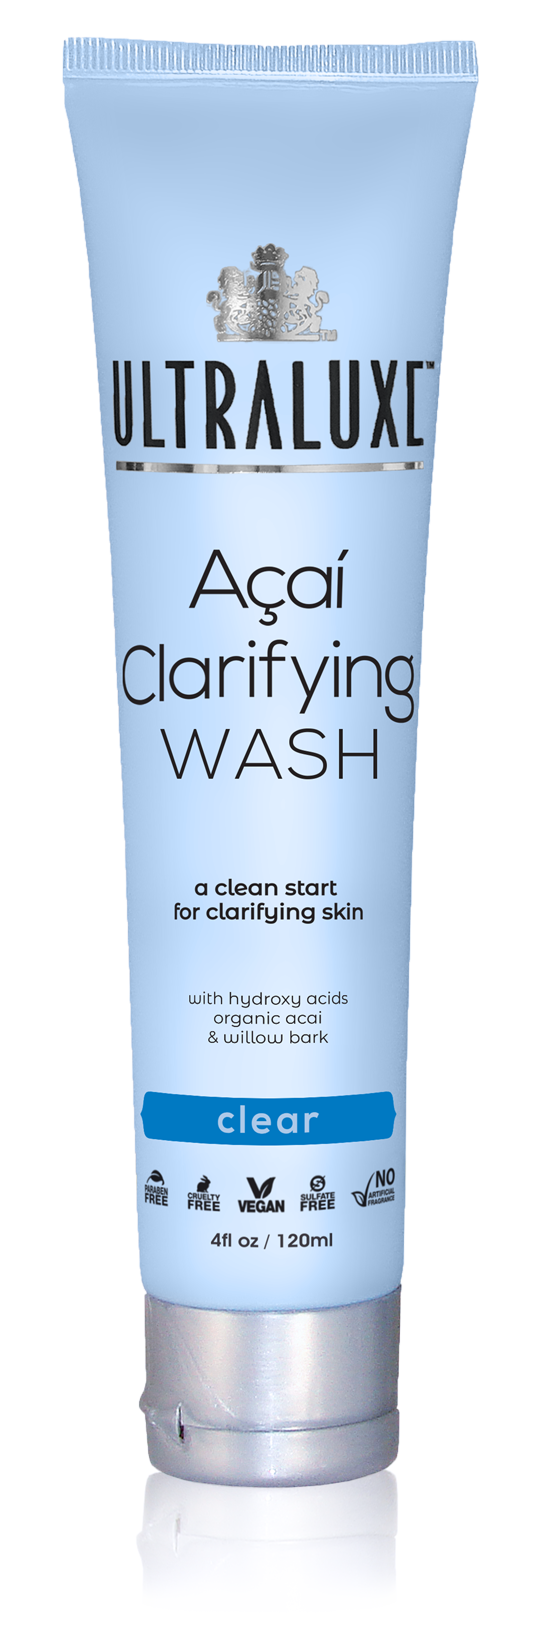 Acai Clarifying Wash